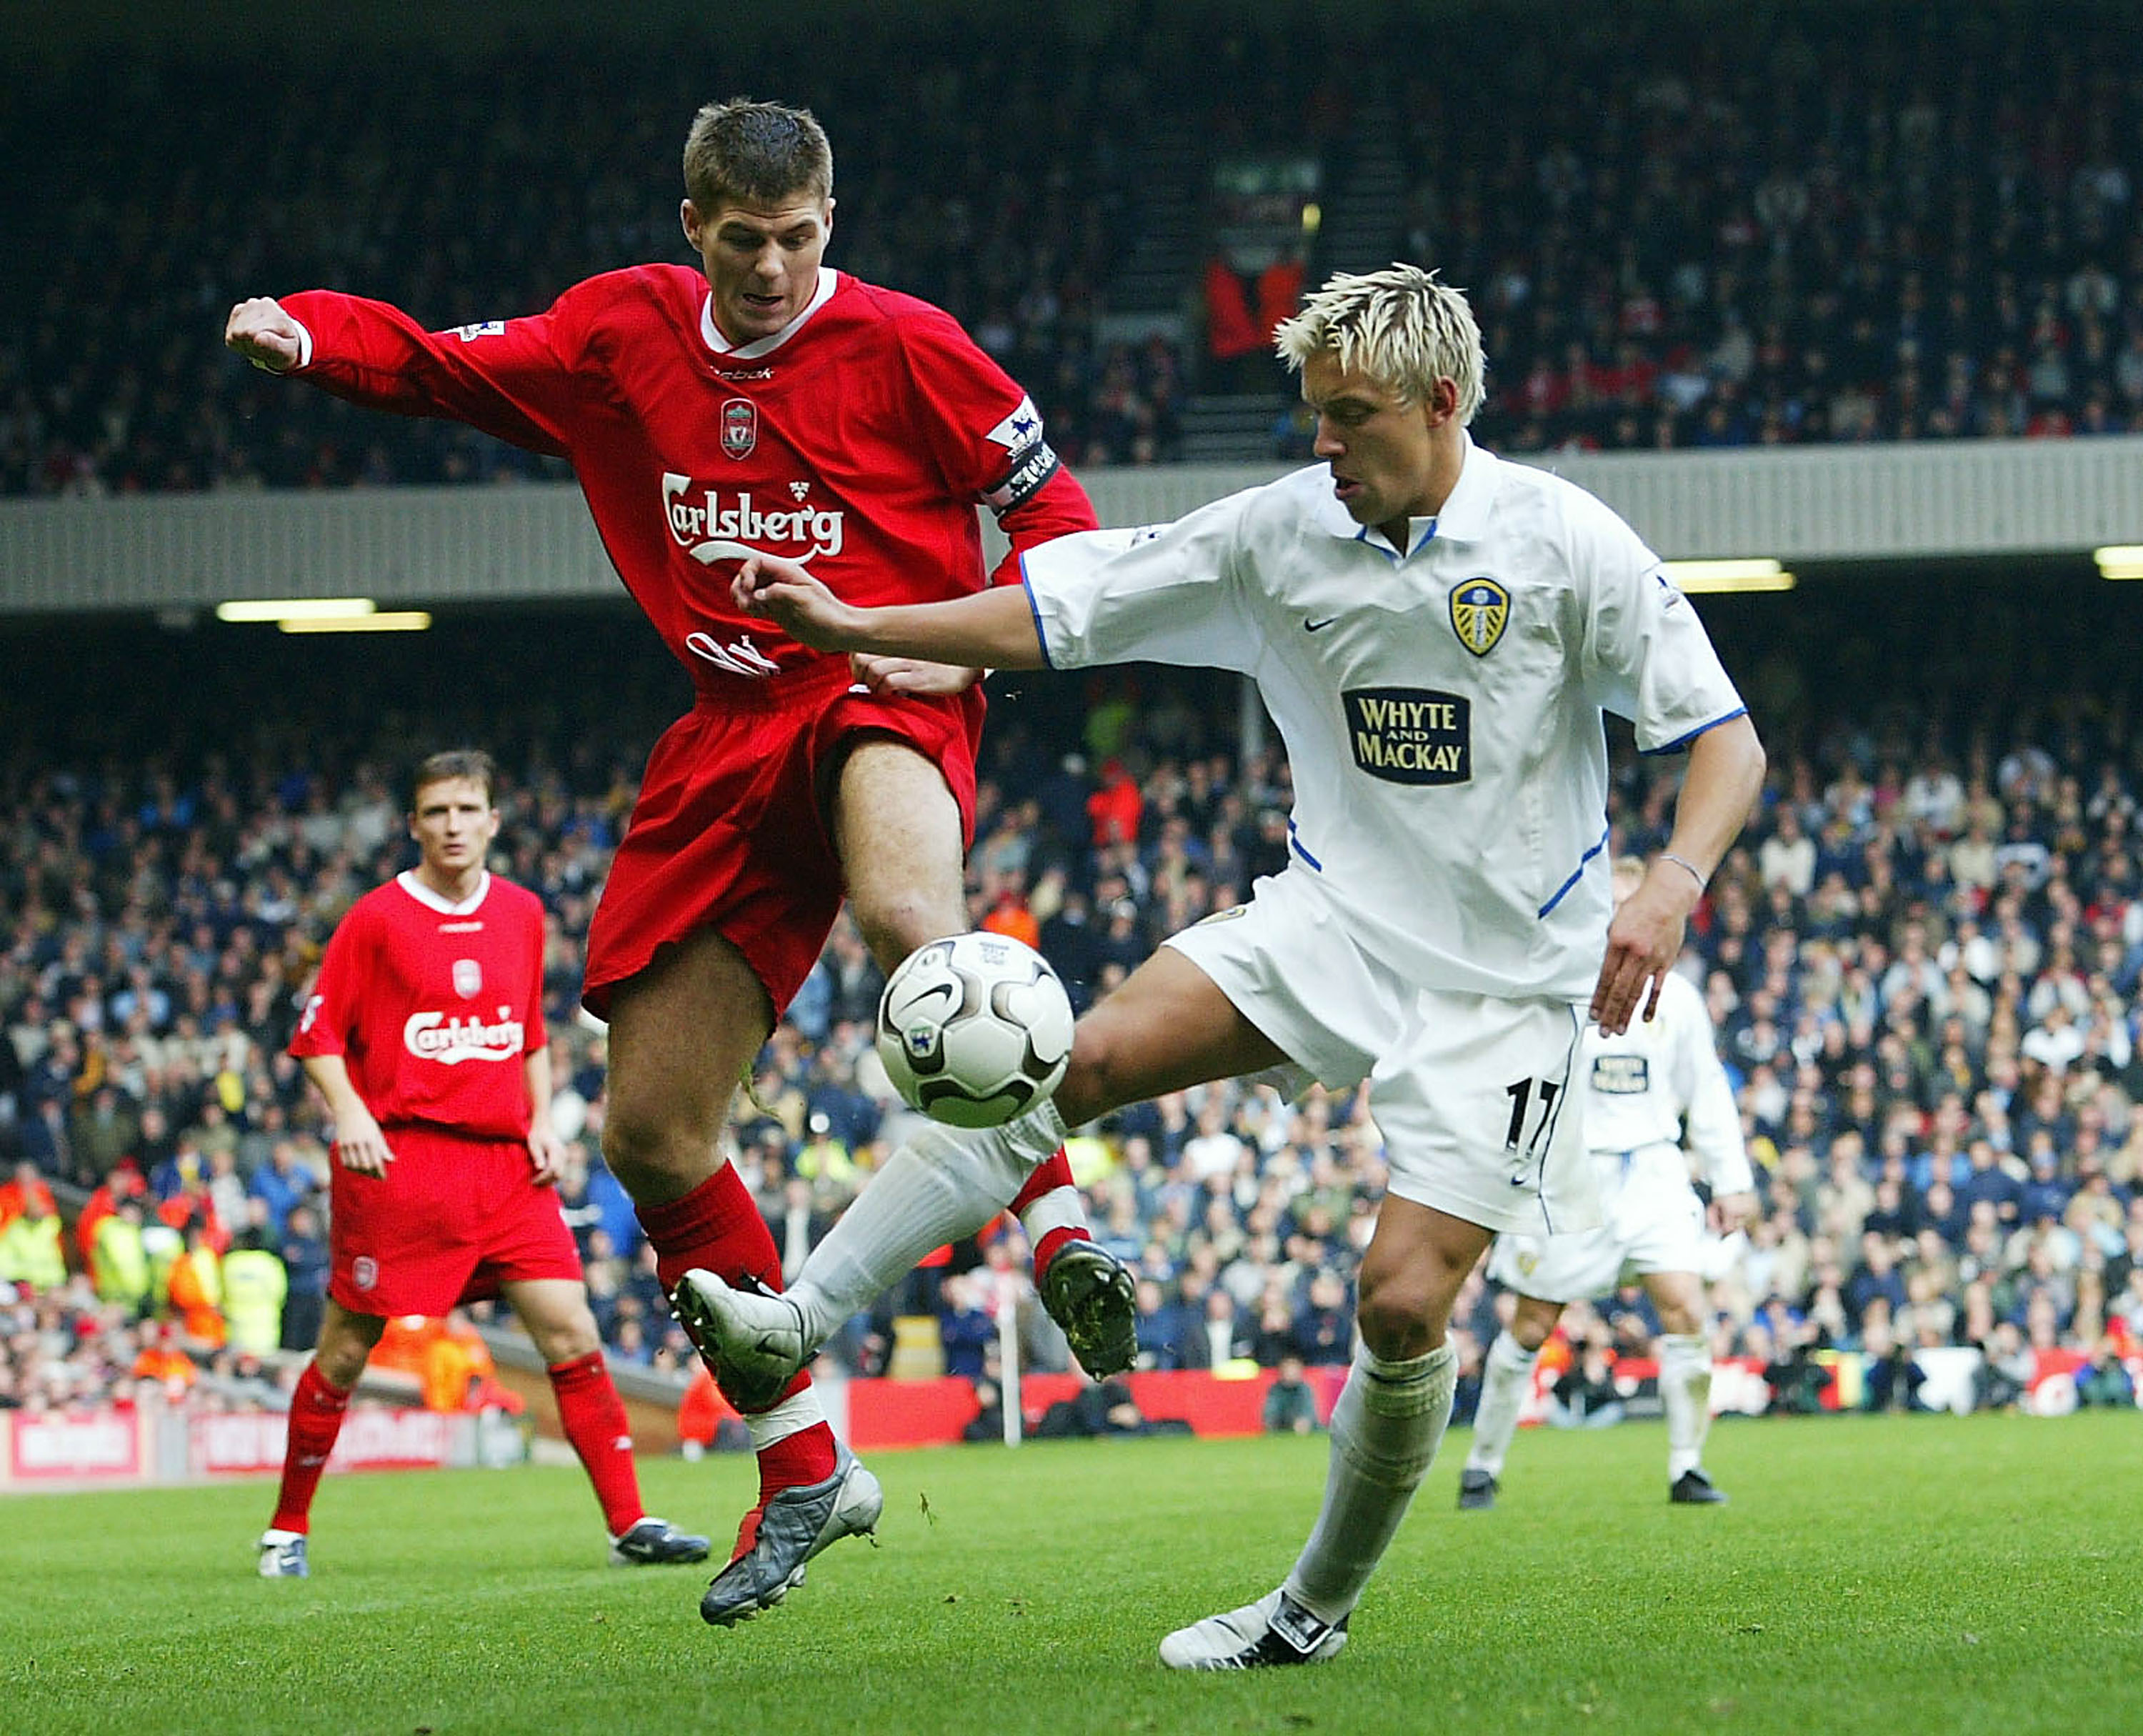 It has been 13 years since Leeds went to Liverpool. Things have changed.